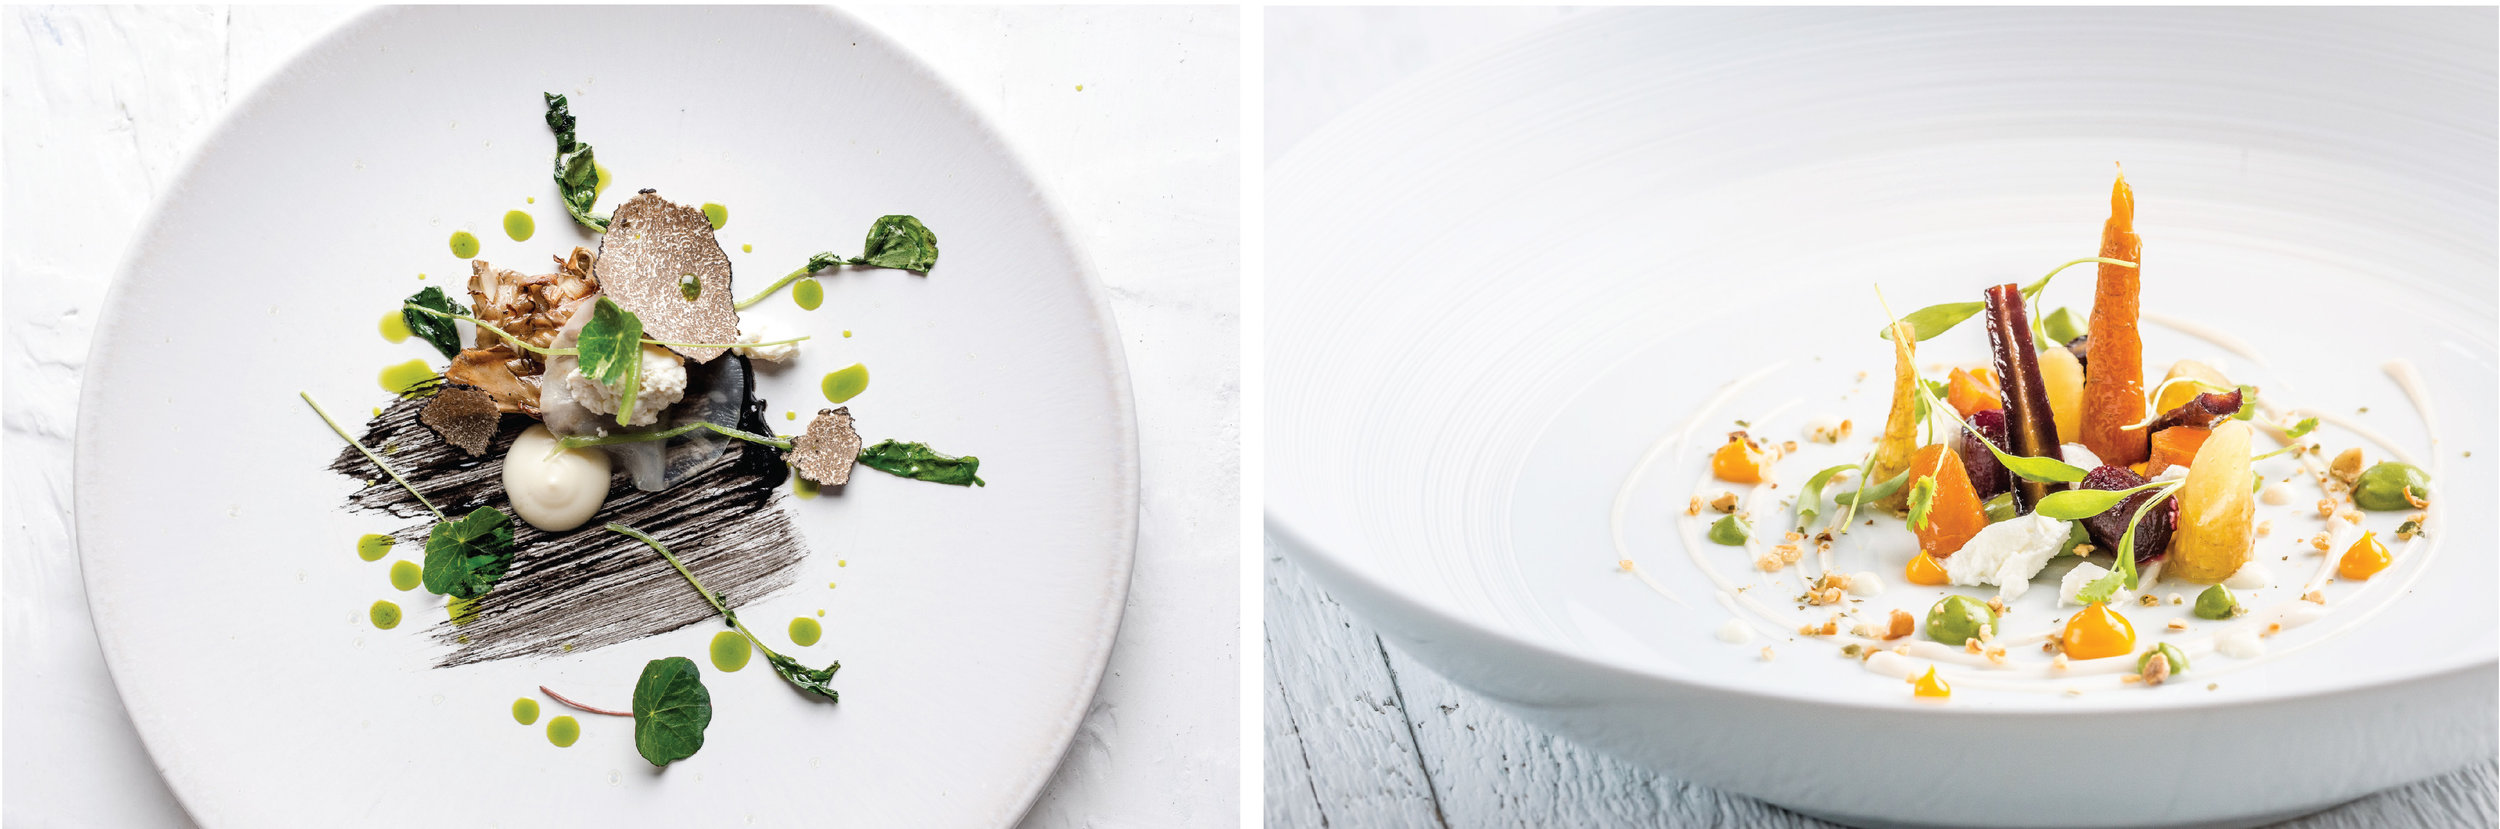 📷Chef Wignall's style of plating that look like magical gardens waiting to be explored  Photo Sources:    Michael Wignall